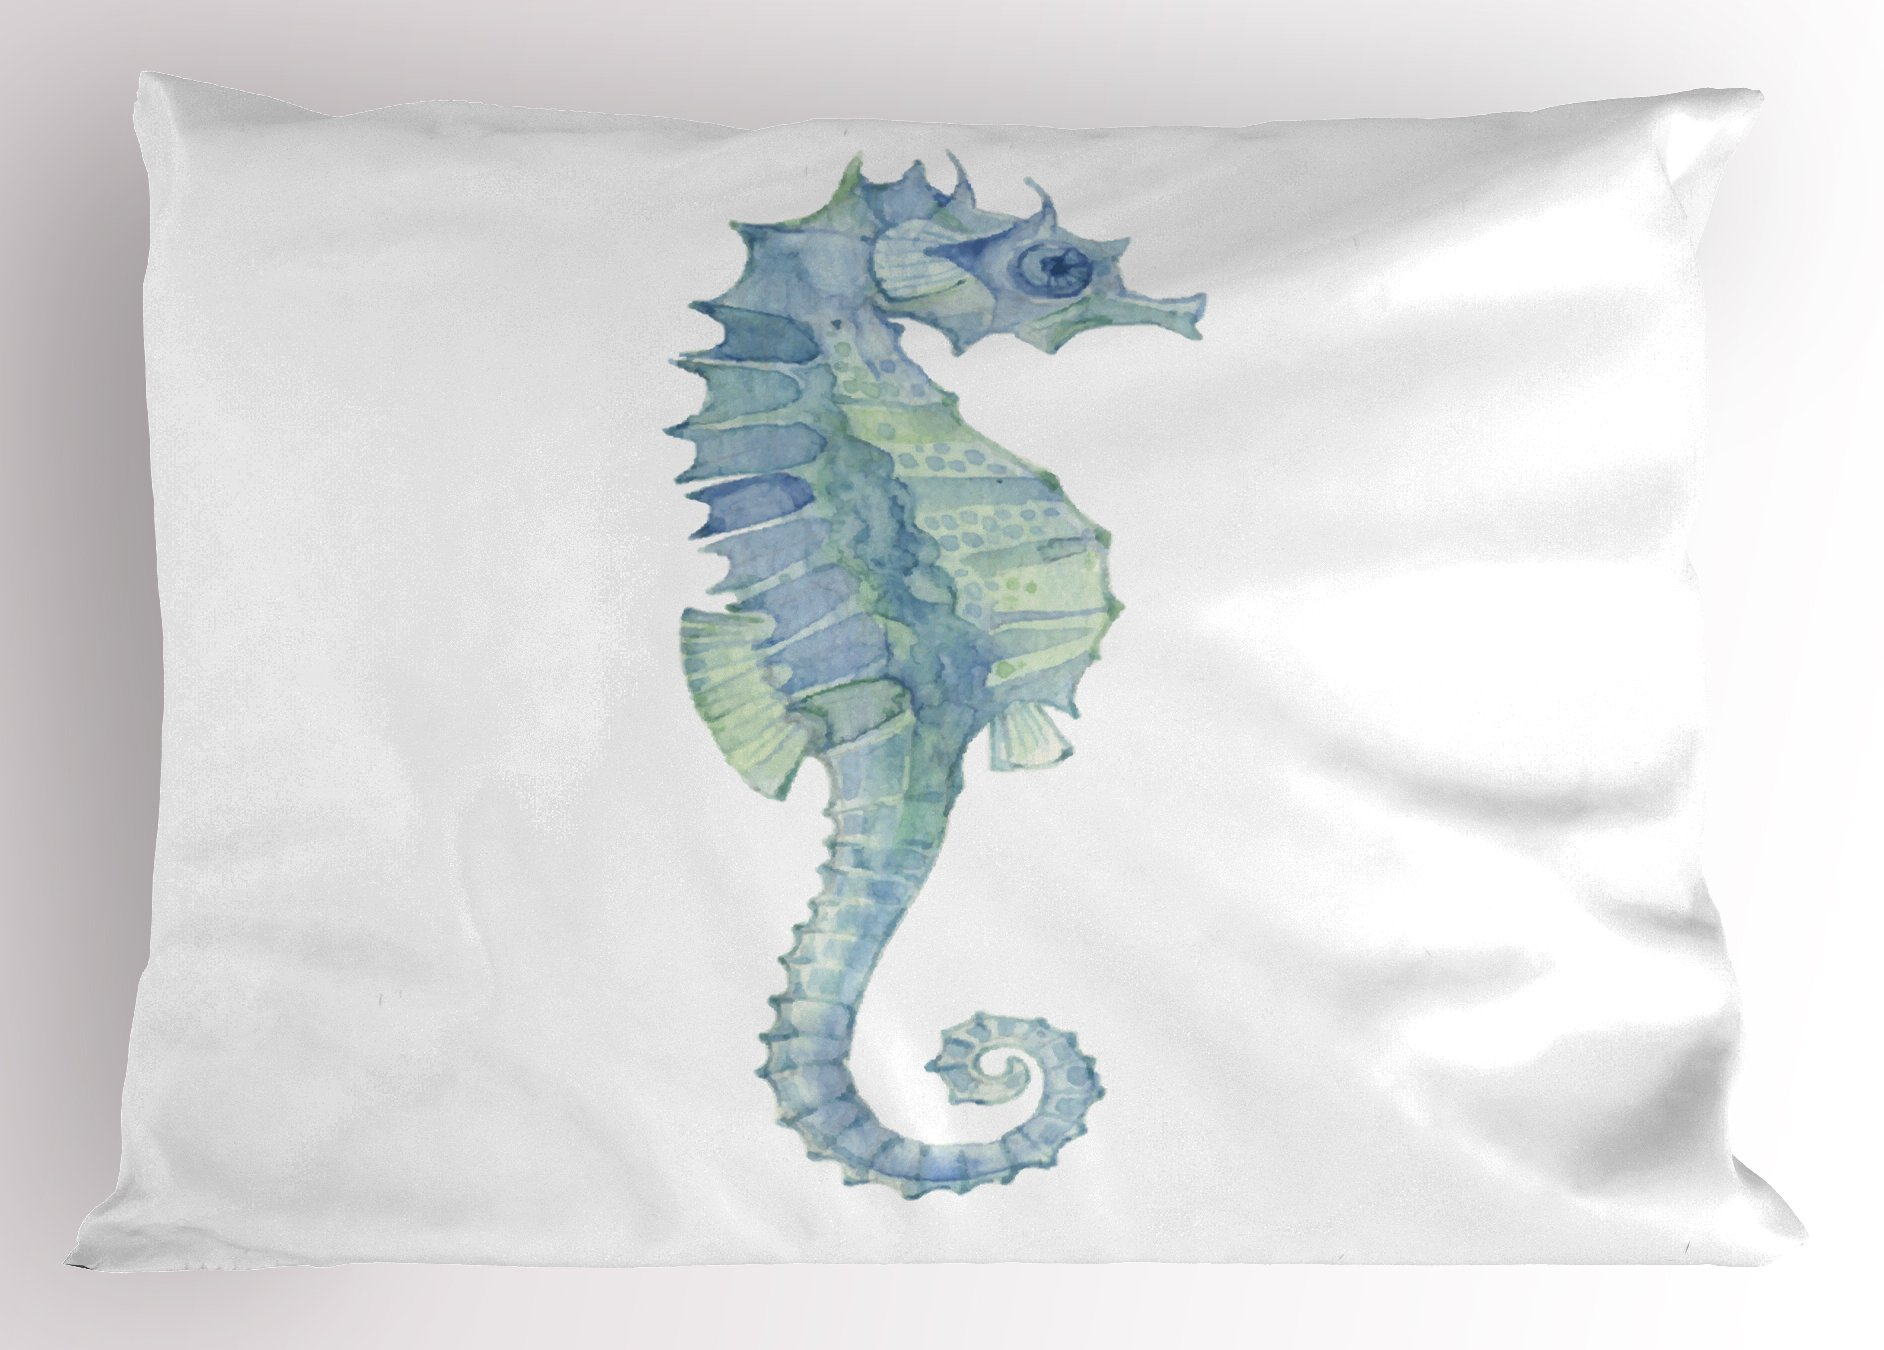 Lunarable Animal Pillow Sham, Profile Picture of a Seahorse in Paintbrush Watercolor Style with Haze Effects, Decorative Standard Size Printed Pillowcase, 26 X 20 inches, Light Blue Green